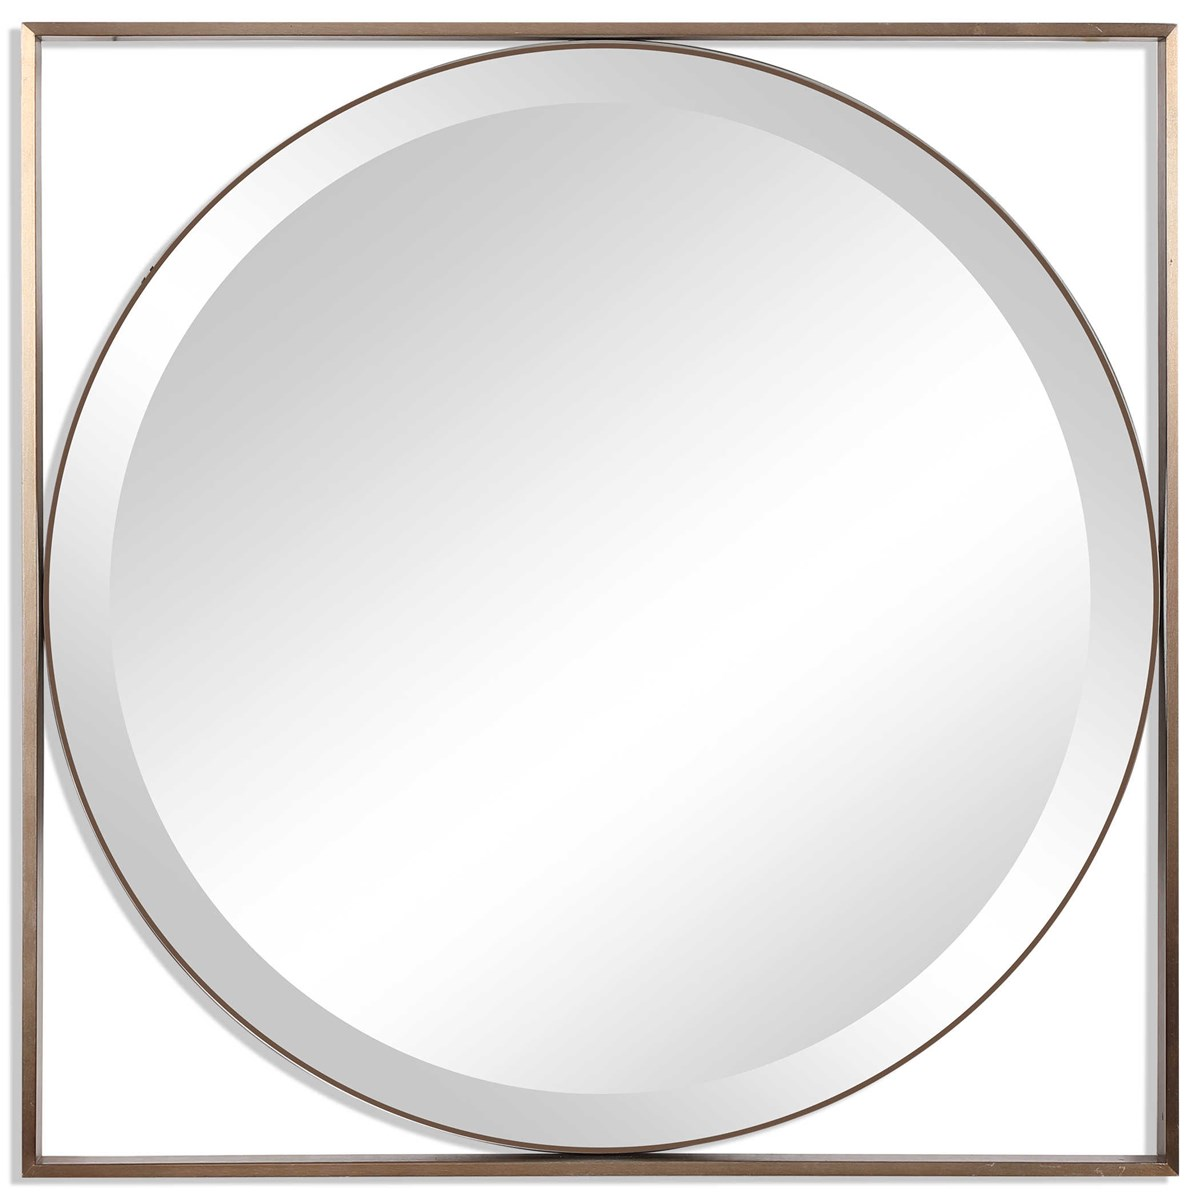 uttermost-eclipse-square-wall-mirror-bronze-modern-contemporary-floating.jpg